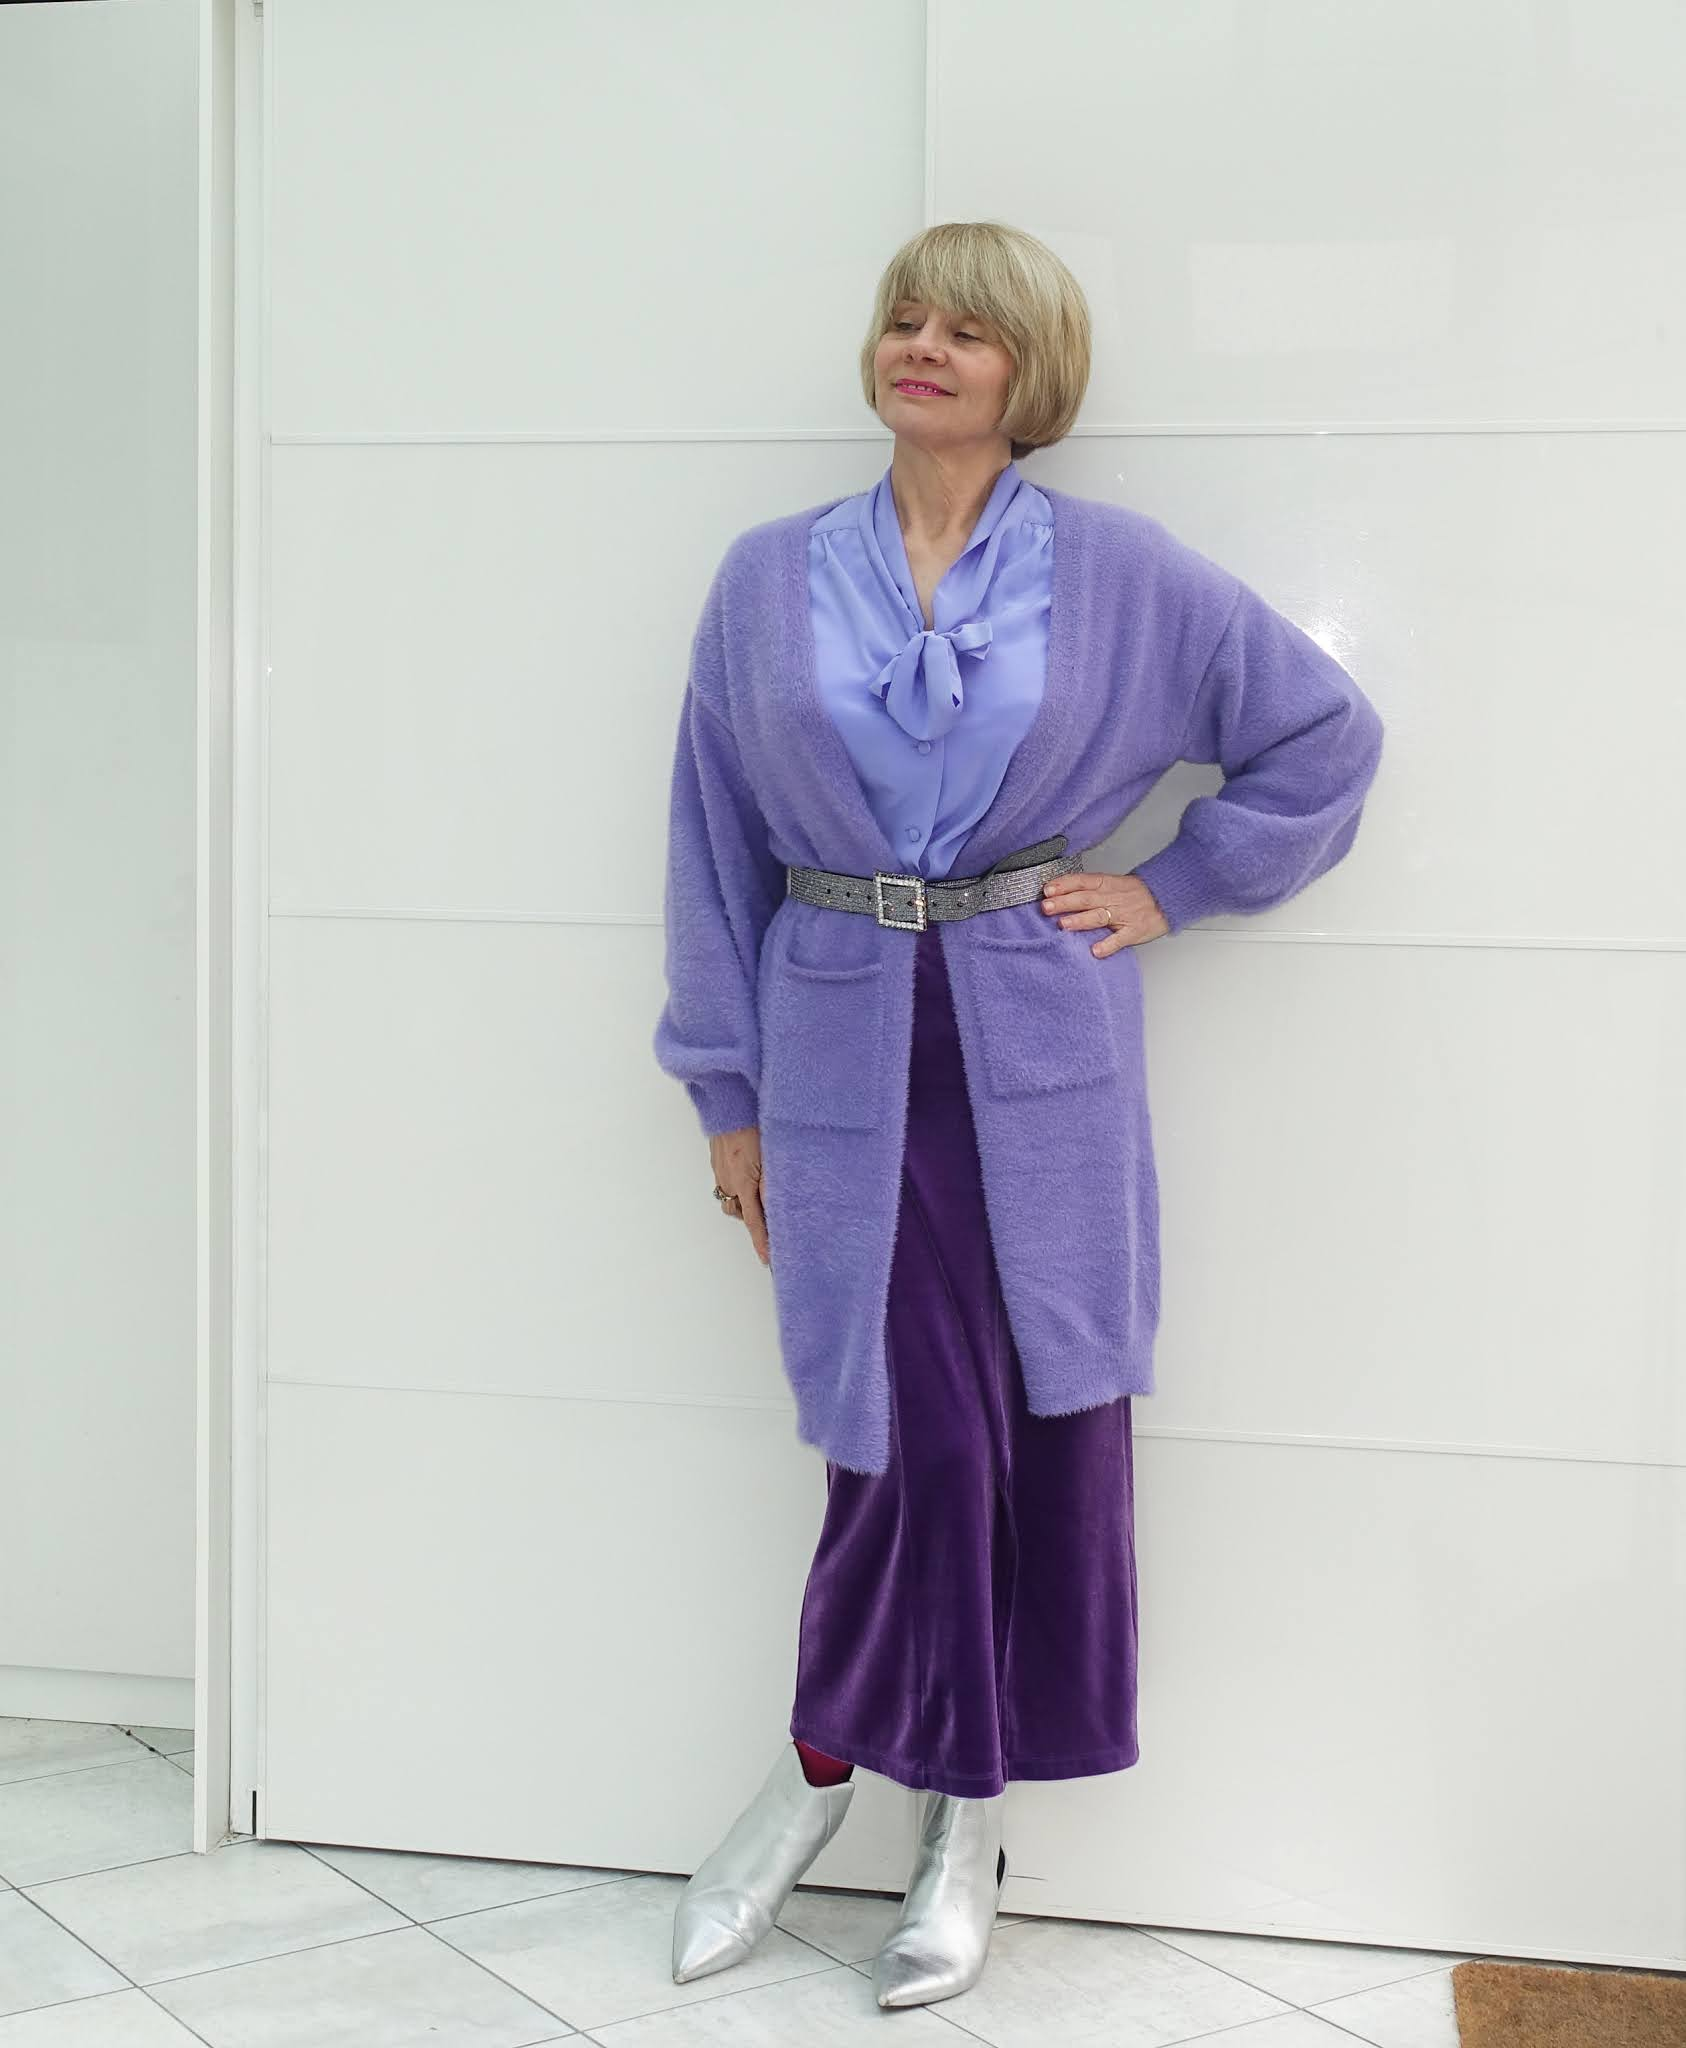 Over 50s blogger Gail Hanlon from Is This Mutton in lilac blouse, long cardigan and purple skirt